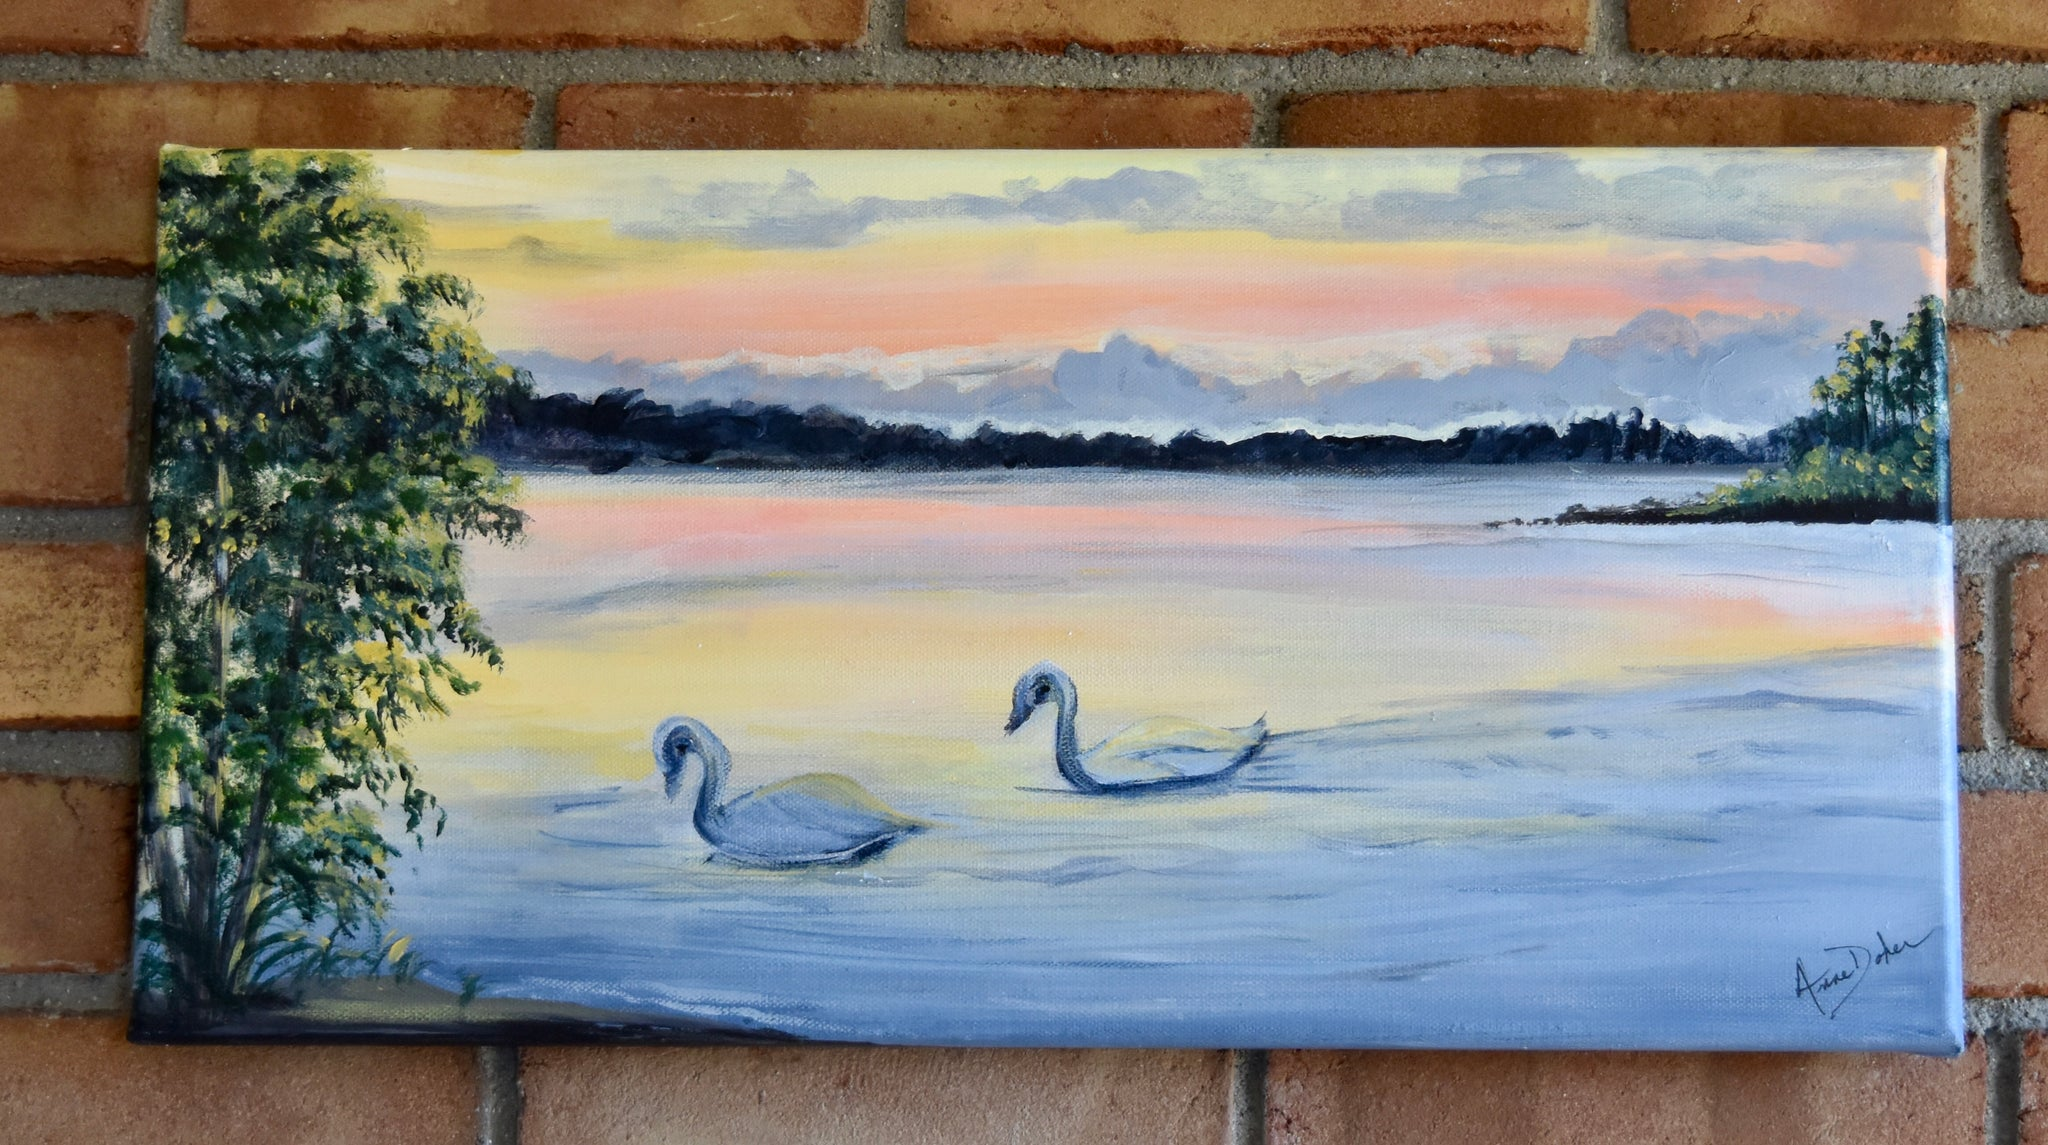 Swans on a Quiet Sunlit Lake